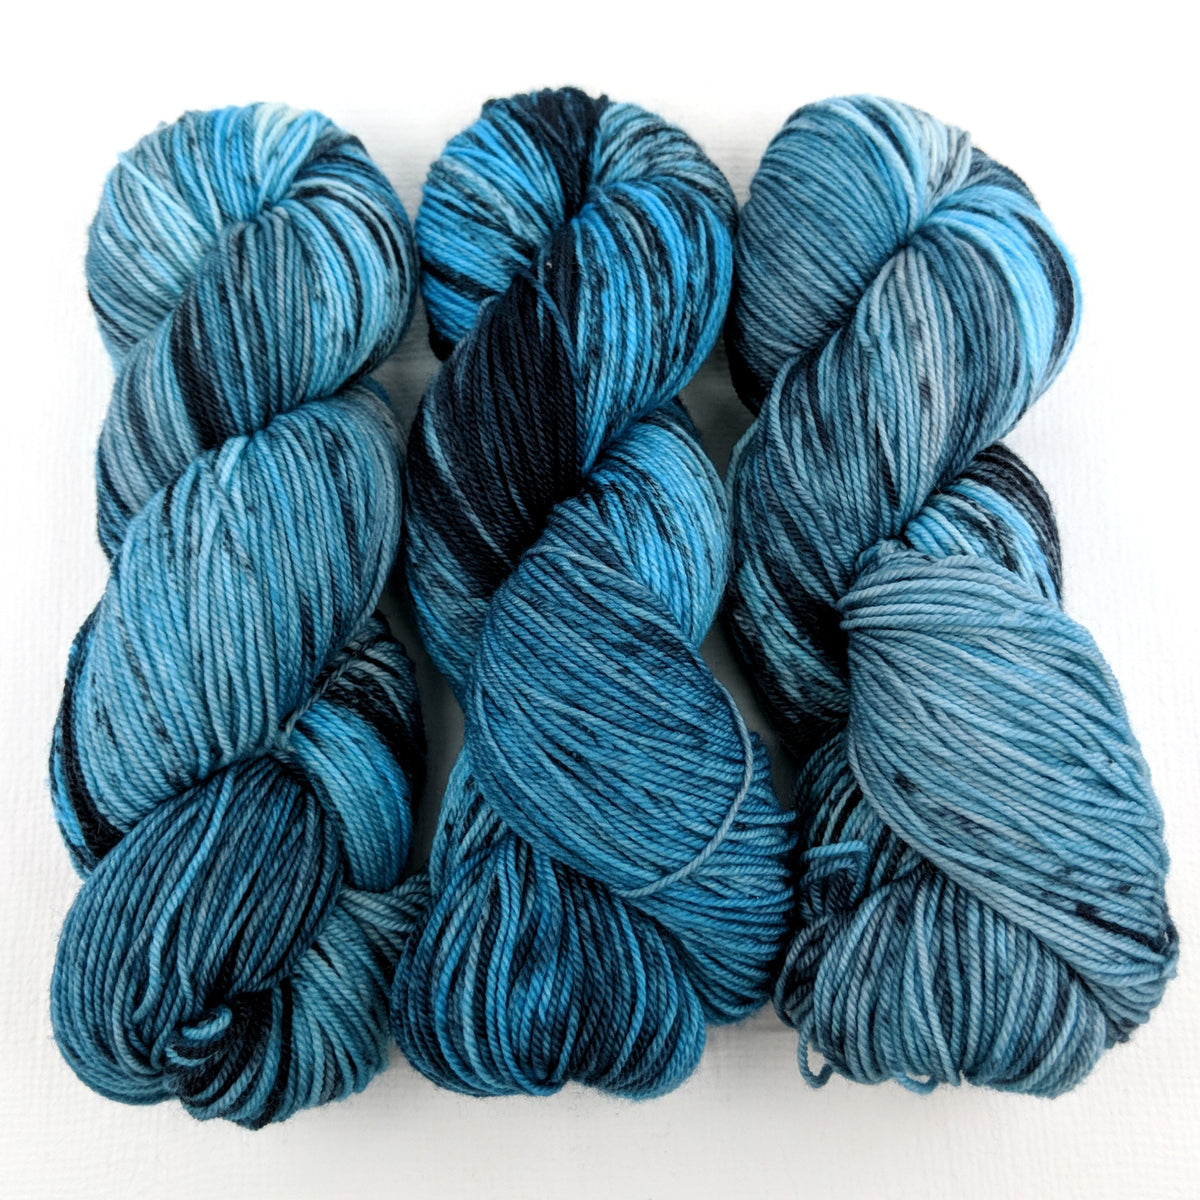 Chinook Arch - Socknado Fingering - Dyed Stock